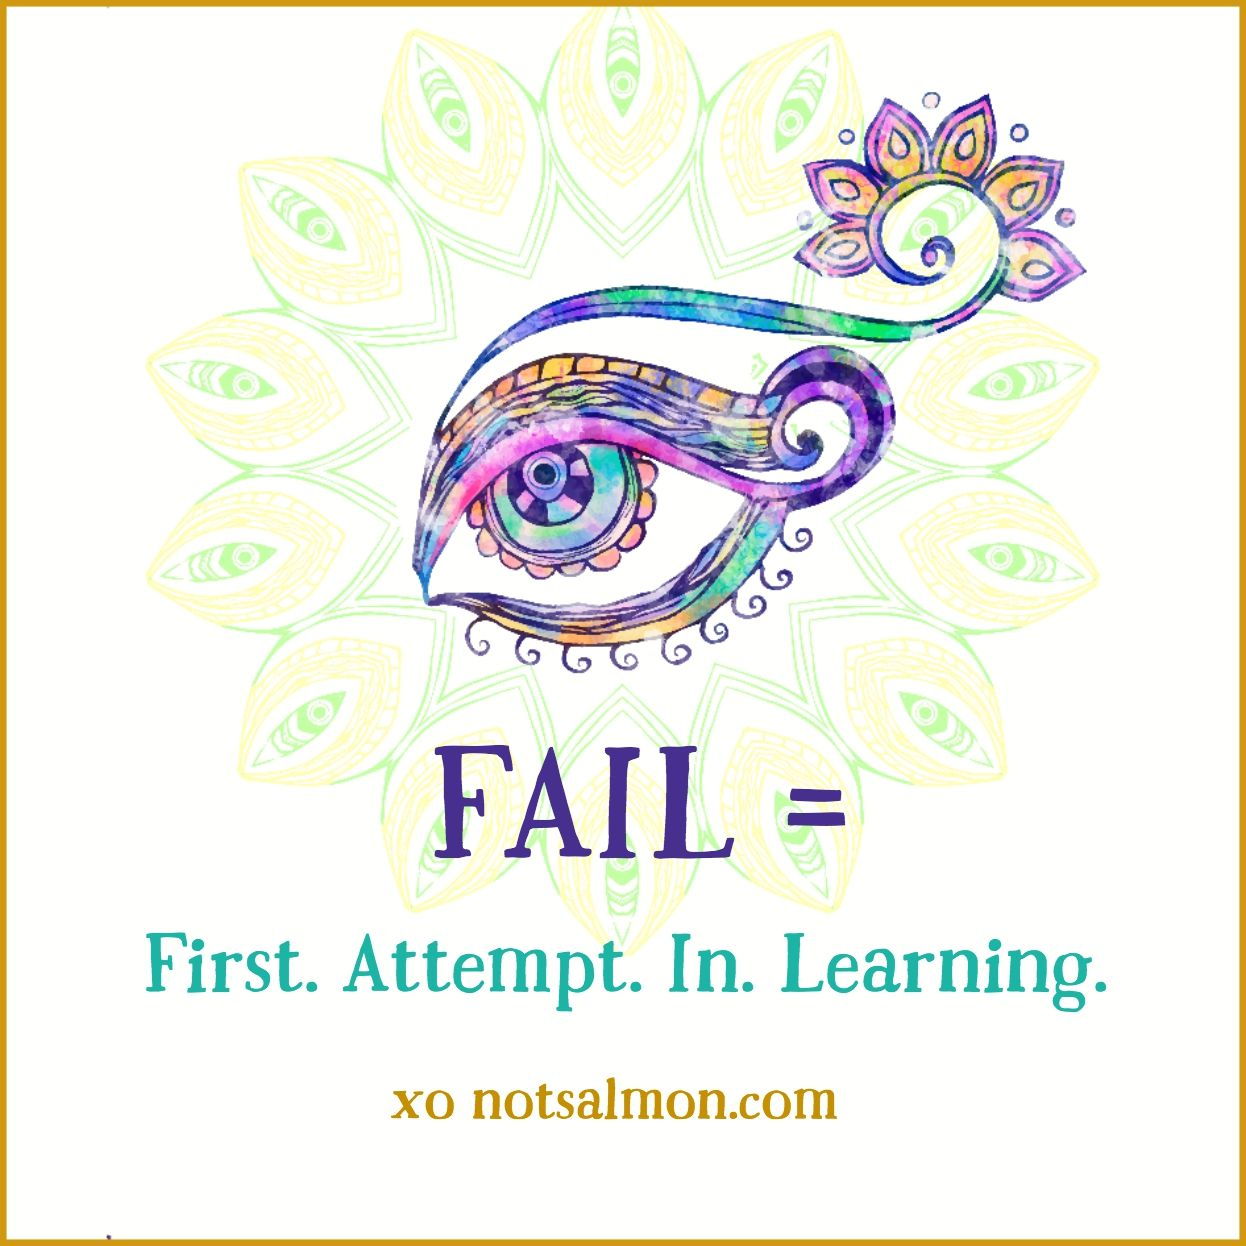 fail first attempt in learning notsalmon click eye for in learning notsalmon click eye for more and essays